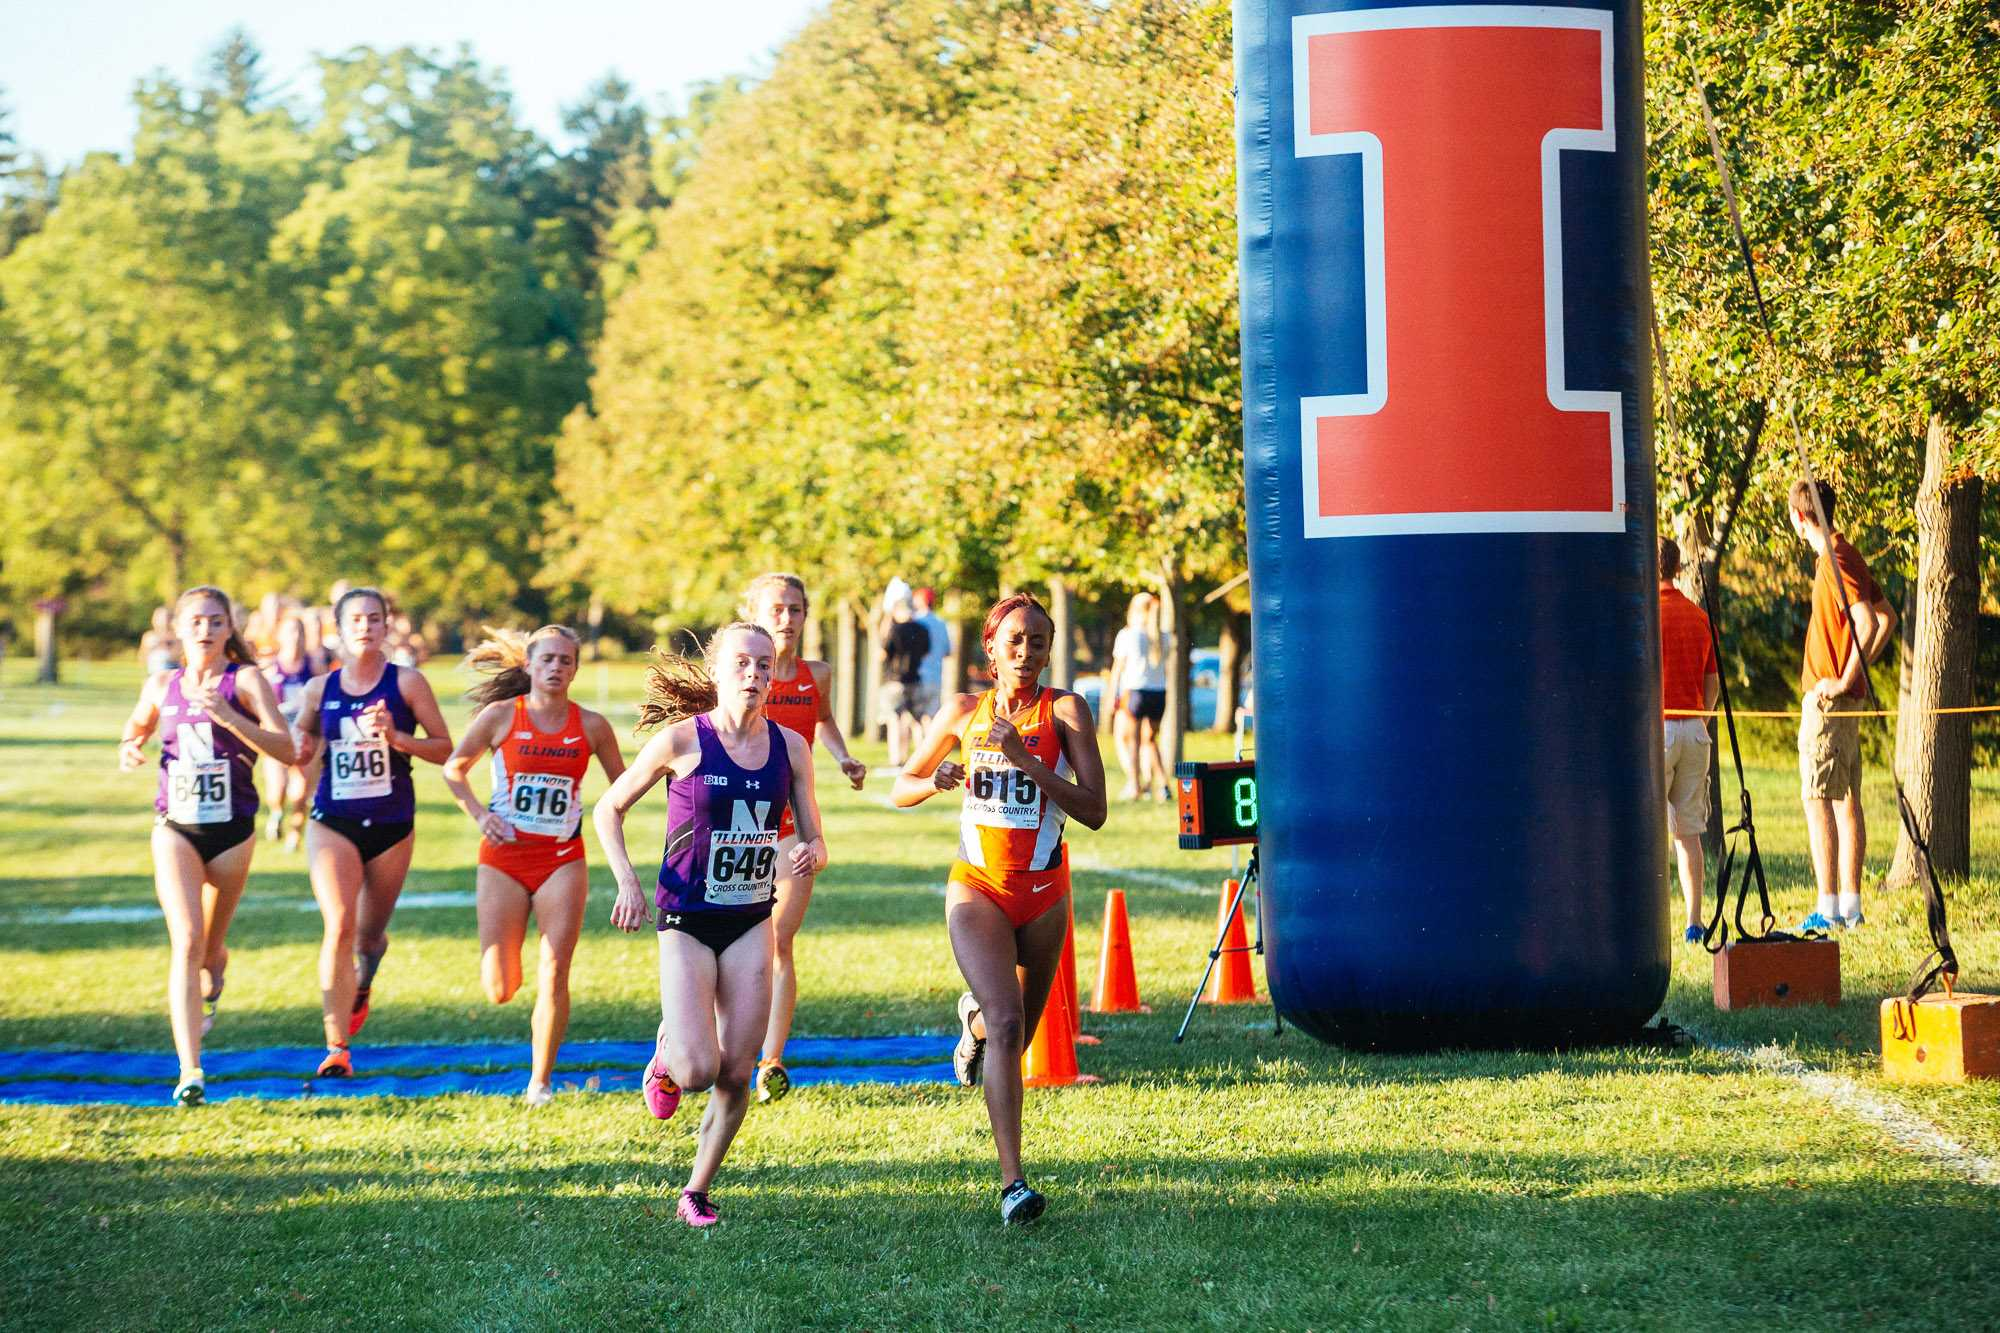 Denise Branch leading the team during the women's cross-coutry Illini Challenge. The challenge was held at the UI Arboretum on Friday, September 2, 2016. As one of the three Fighting Illinis to place in top 10, Denise led the way in fifth place.